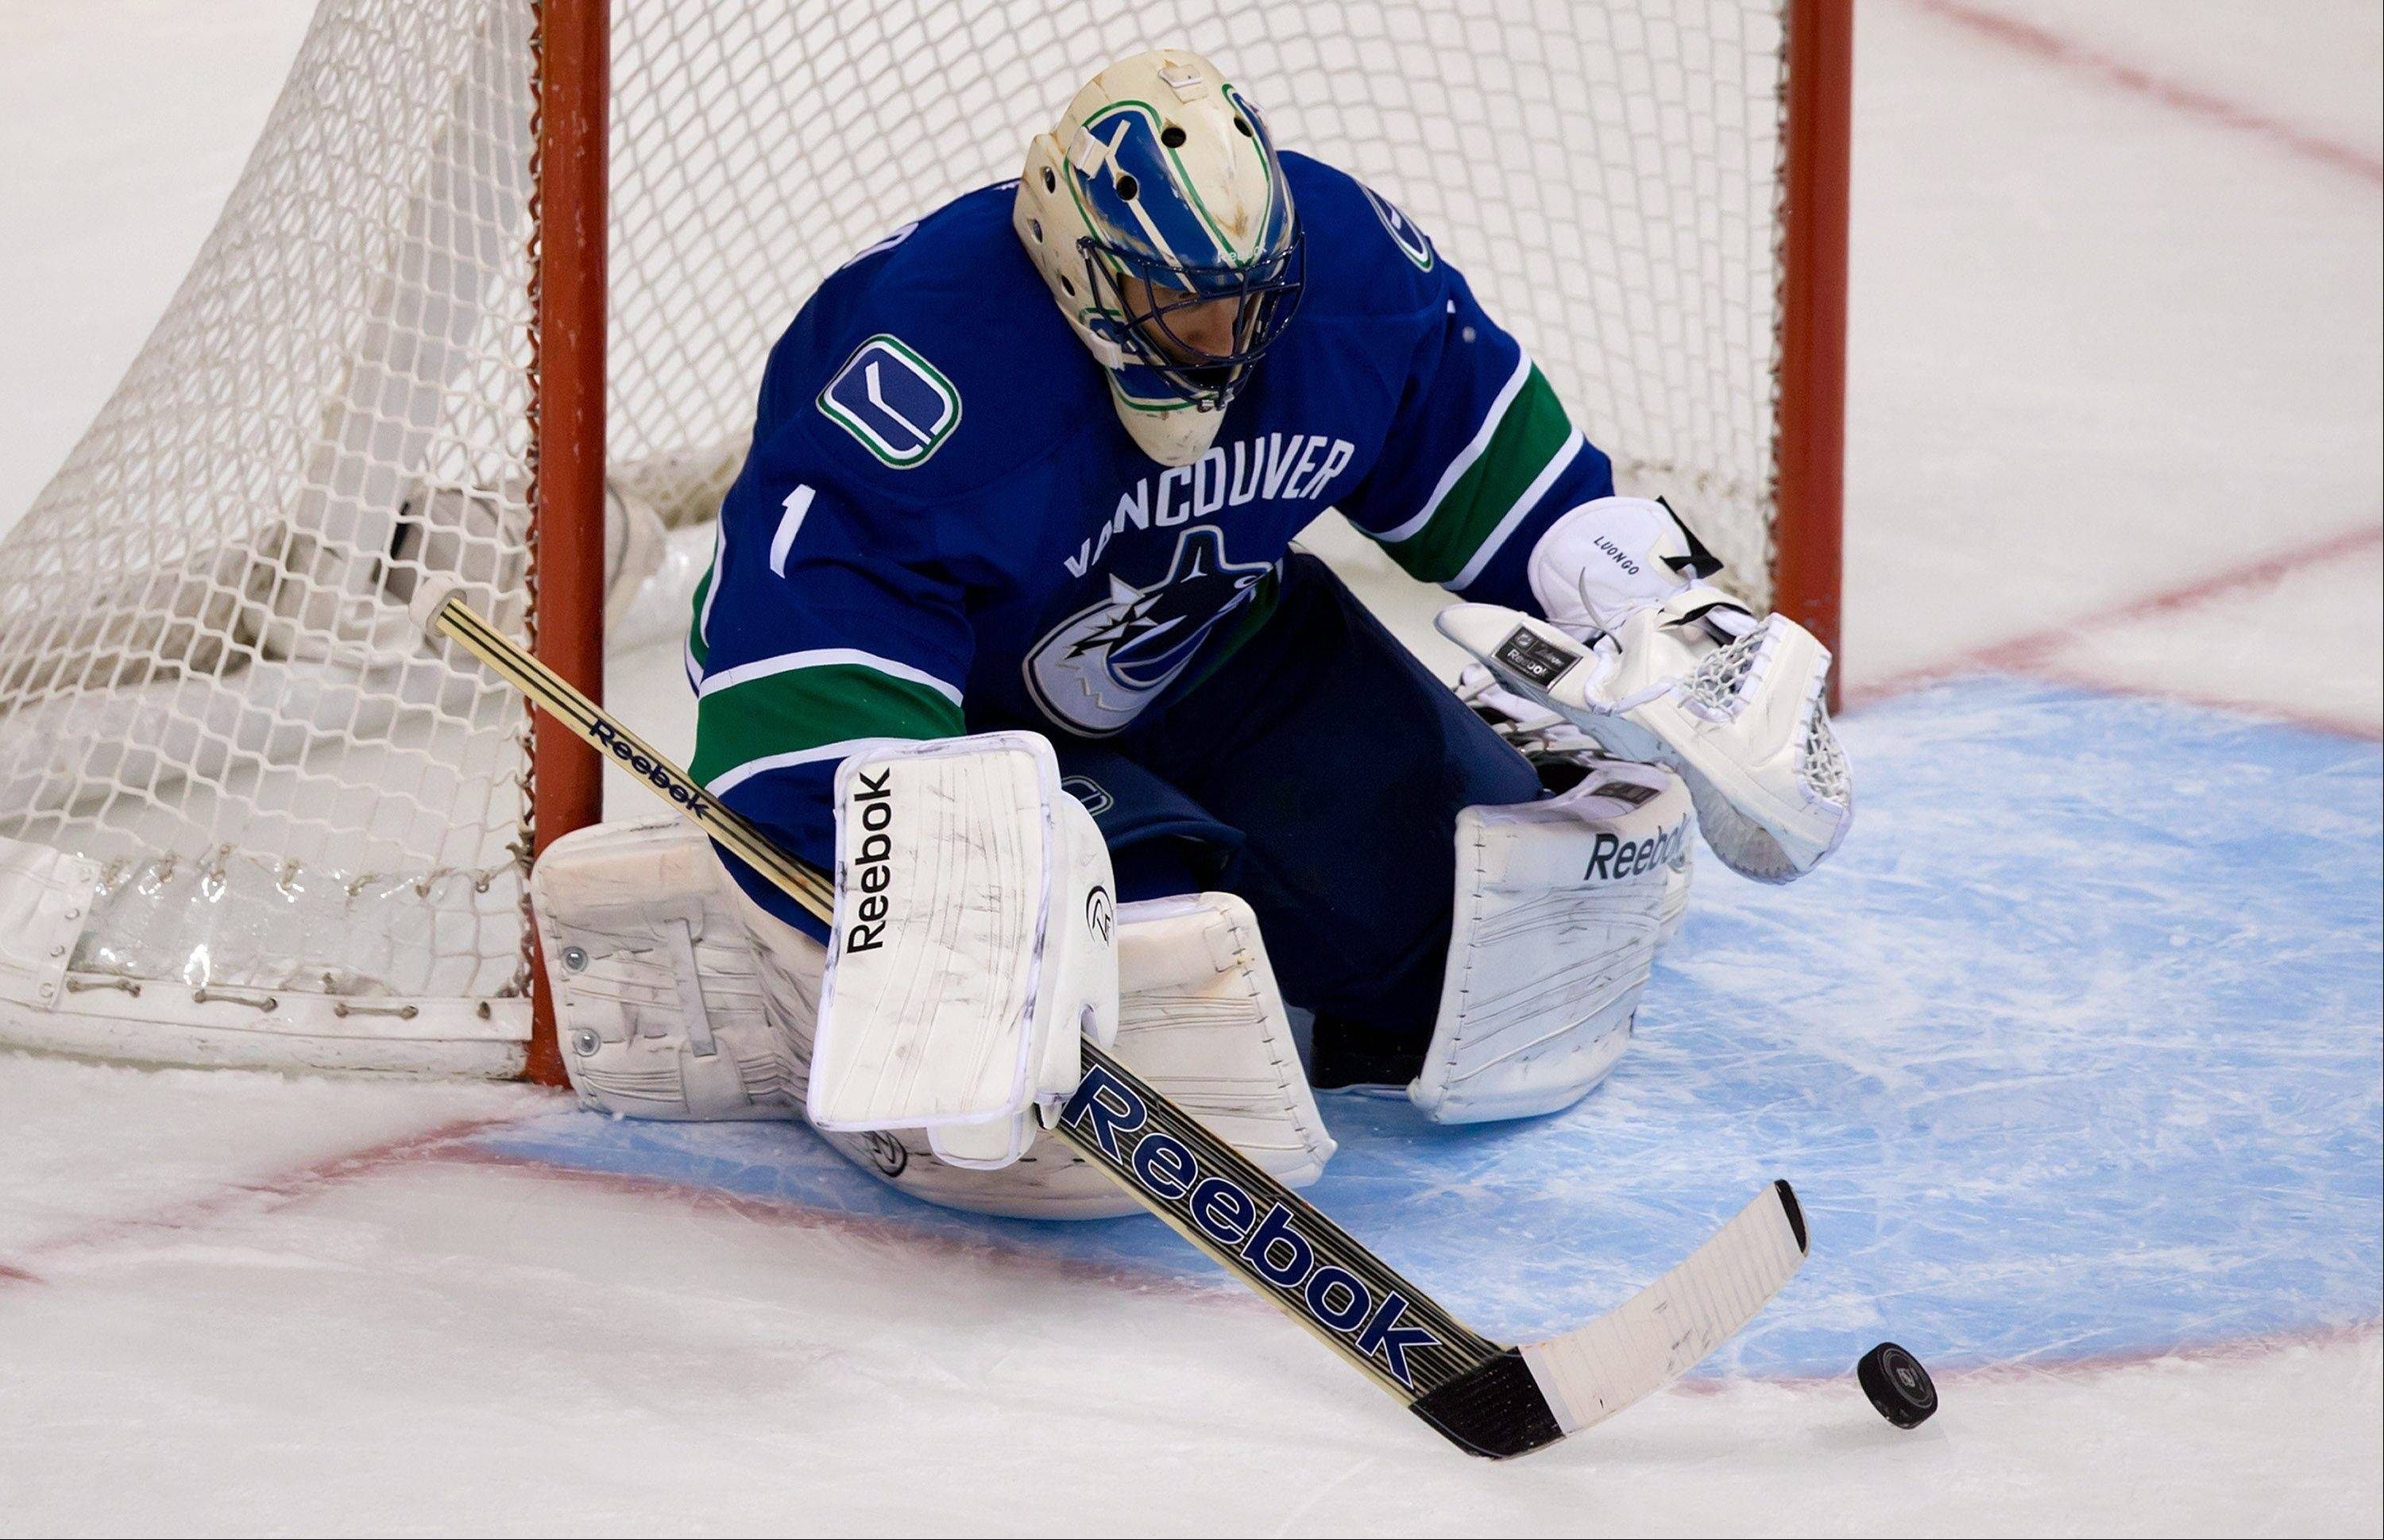 After shutting out the Colorado Avalanche on Wednesday, Vancouver Canucks goalie Roberto Luongo will be in the net Friday again to face the Blackhawks.